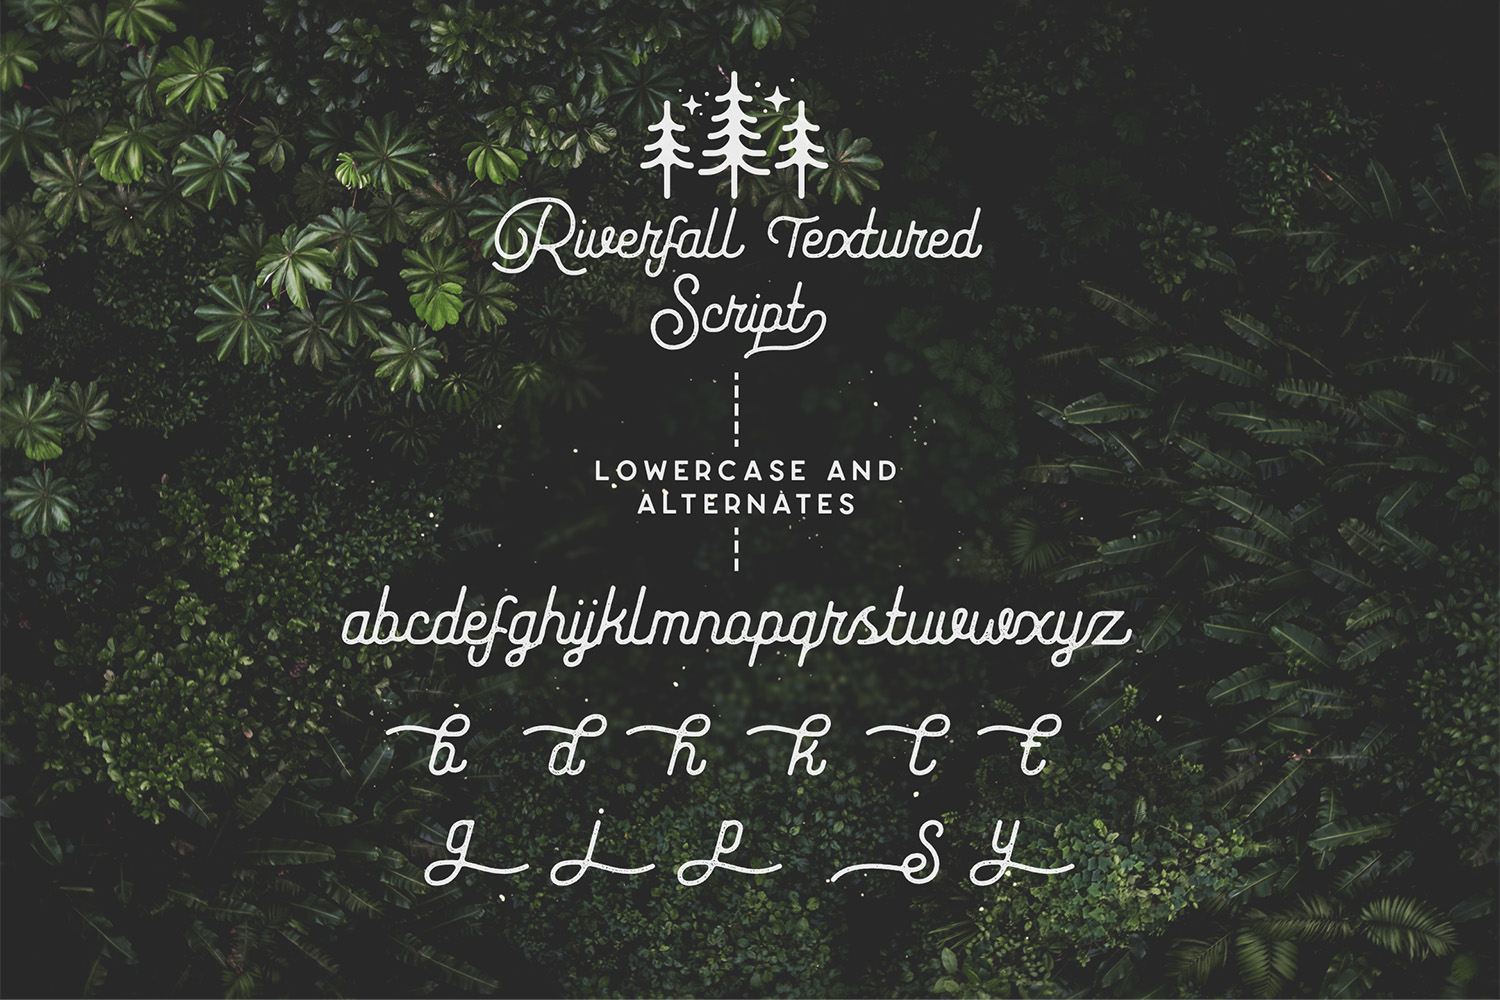 Riverfall Rounded Textured Typeface Ver.1 example image 12